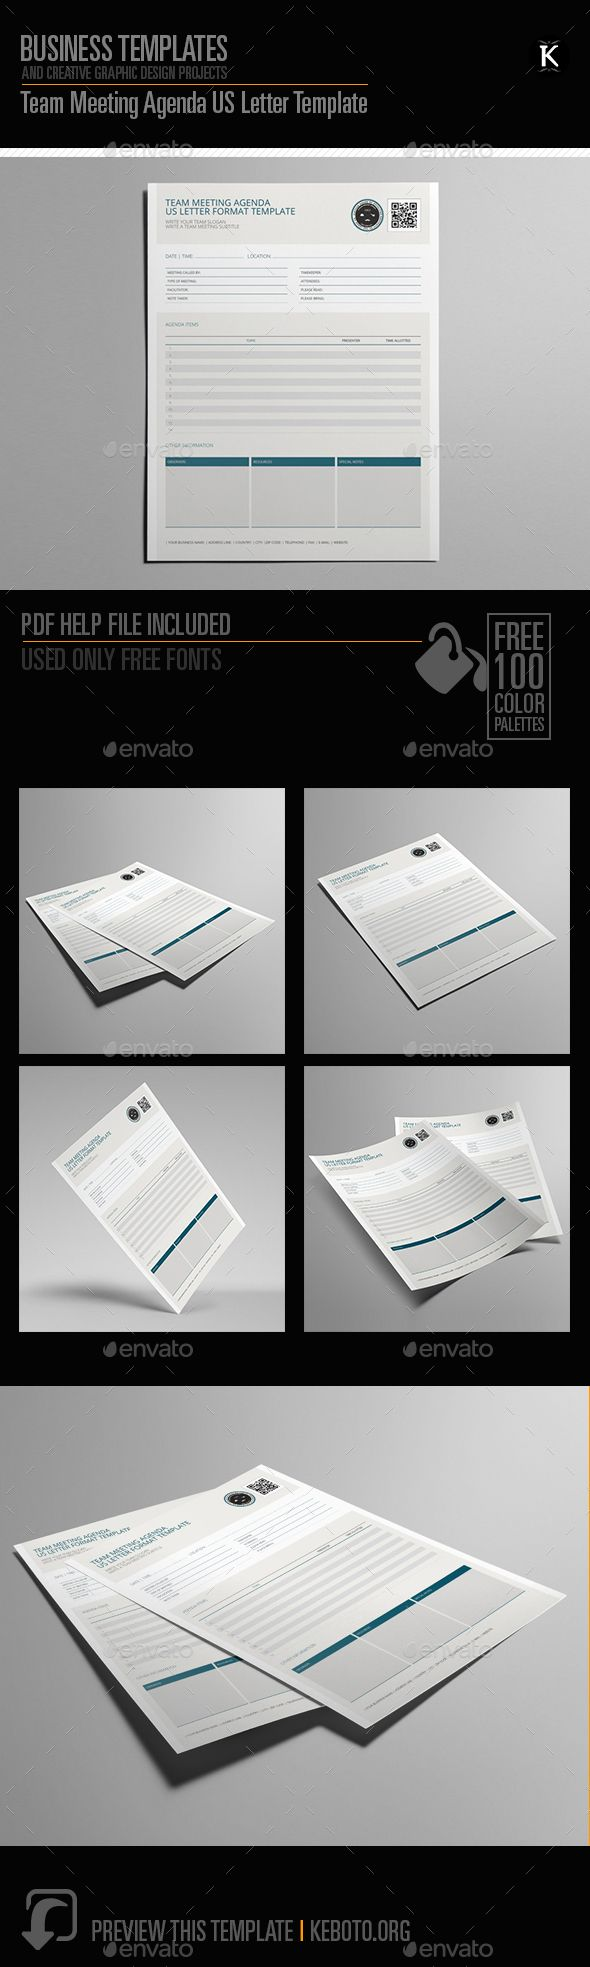 Agenda Sample Format Cool Team Meeting Agenda Us Letter Template  Miscellaneous Print .